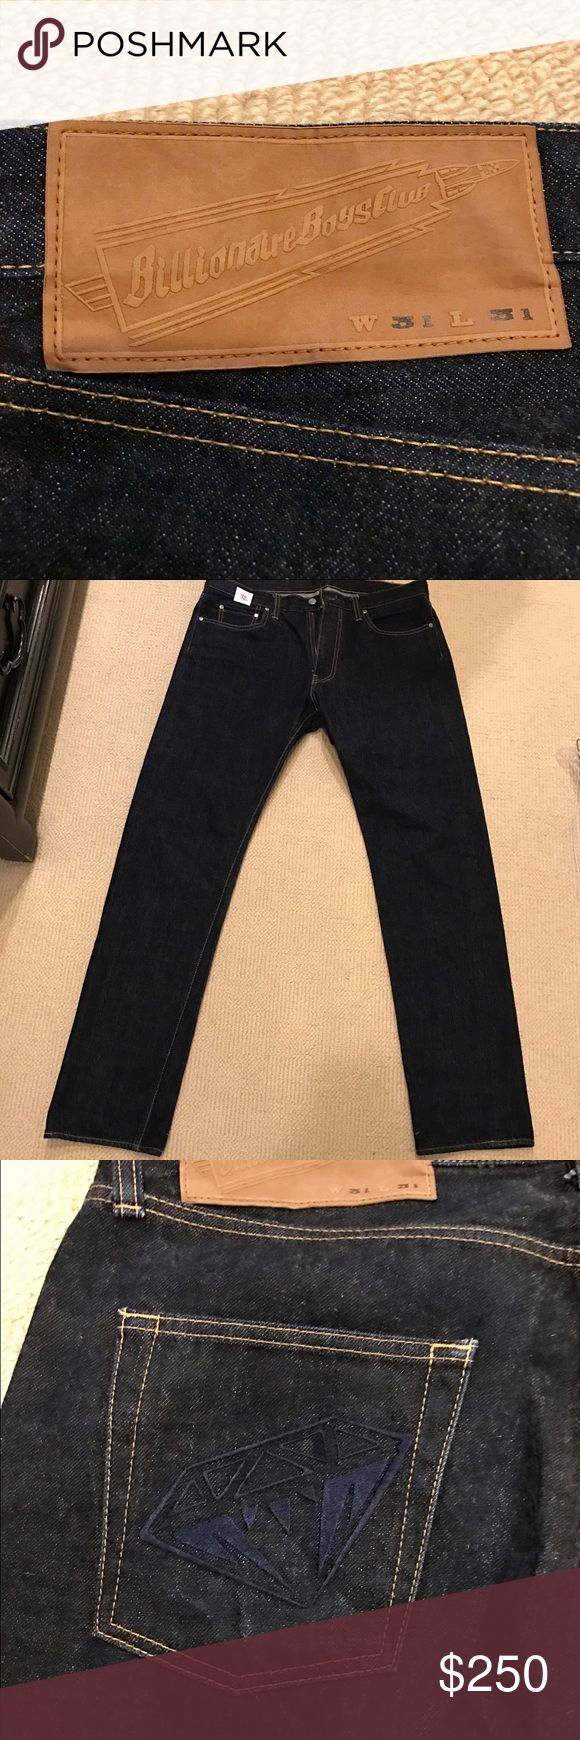 *Limited Time Price!* Billionaire Boys Club Jeans In almost perfect condition, dark wash! Great deal for limited time! 31 x 31 Billionaire Boys Club Jeans